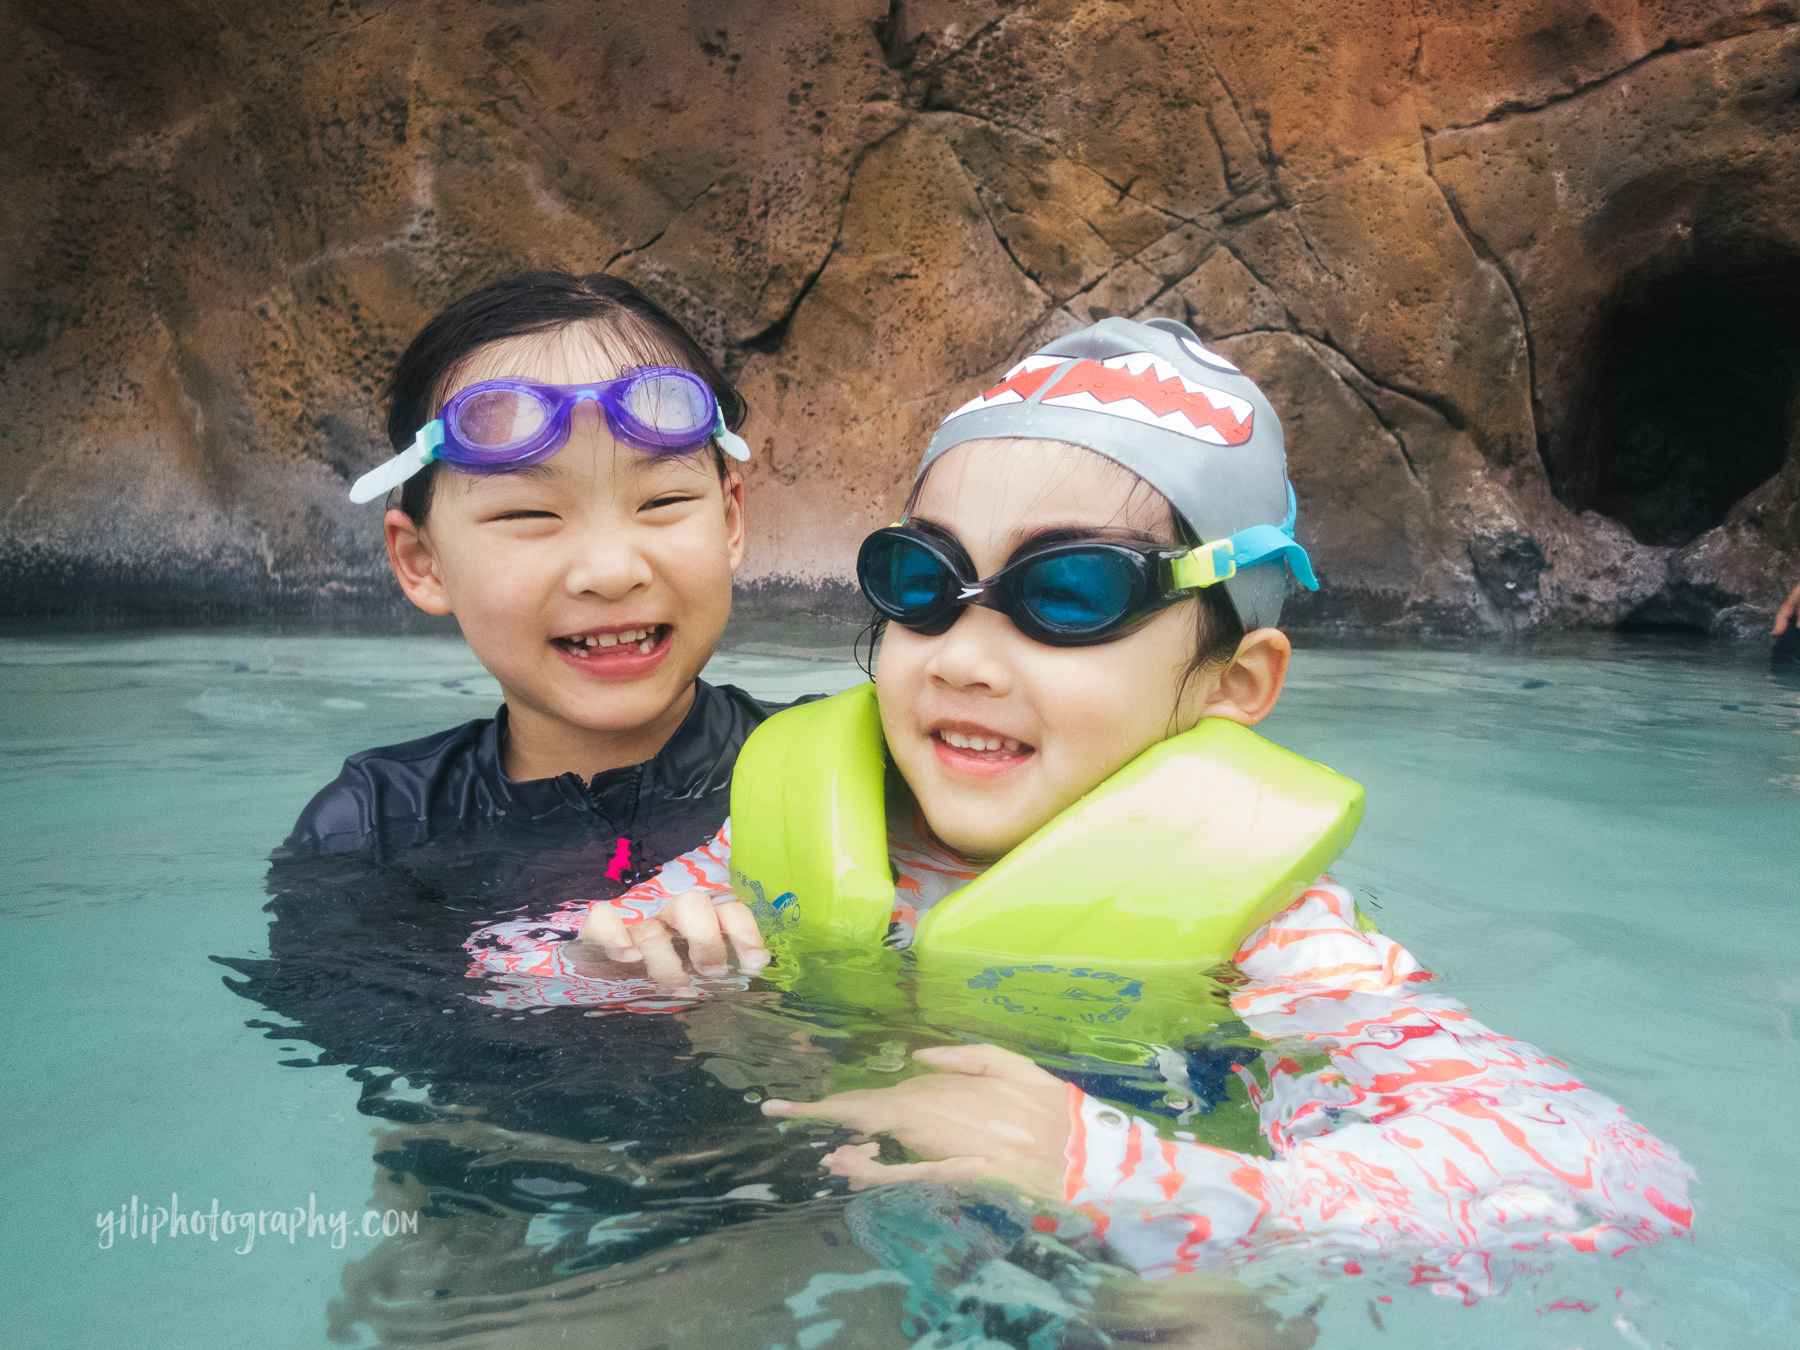 sisters wearing goggles in pool together